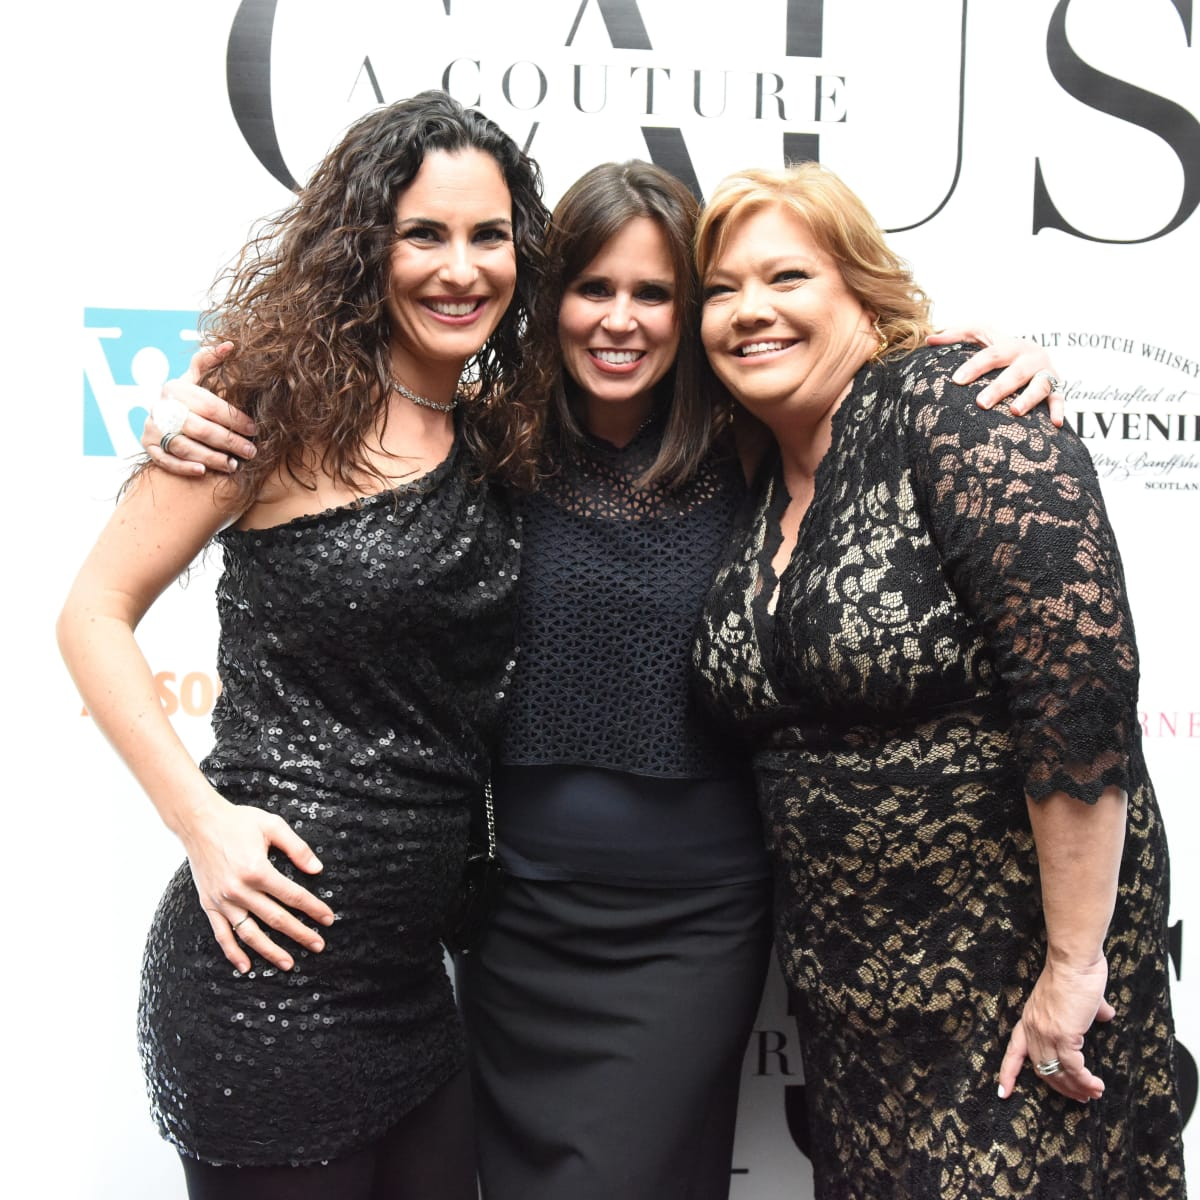 A Couture Cause Jen Berko, Missy Belllinger, Stephanie White